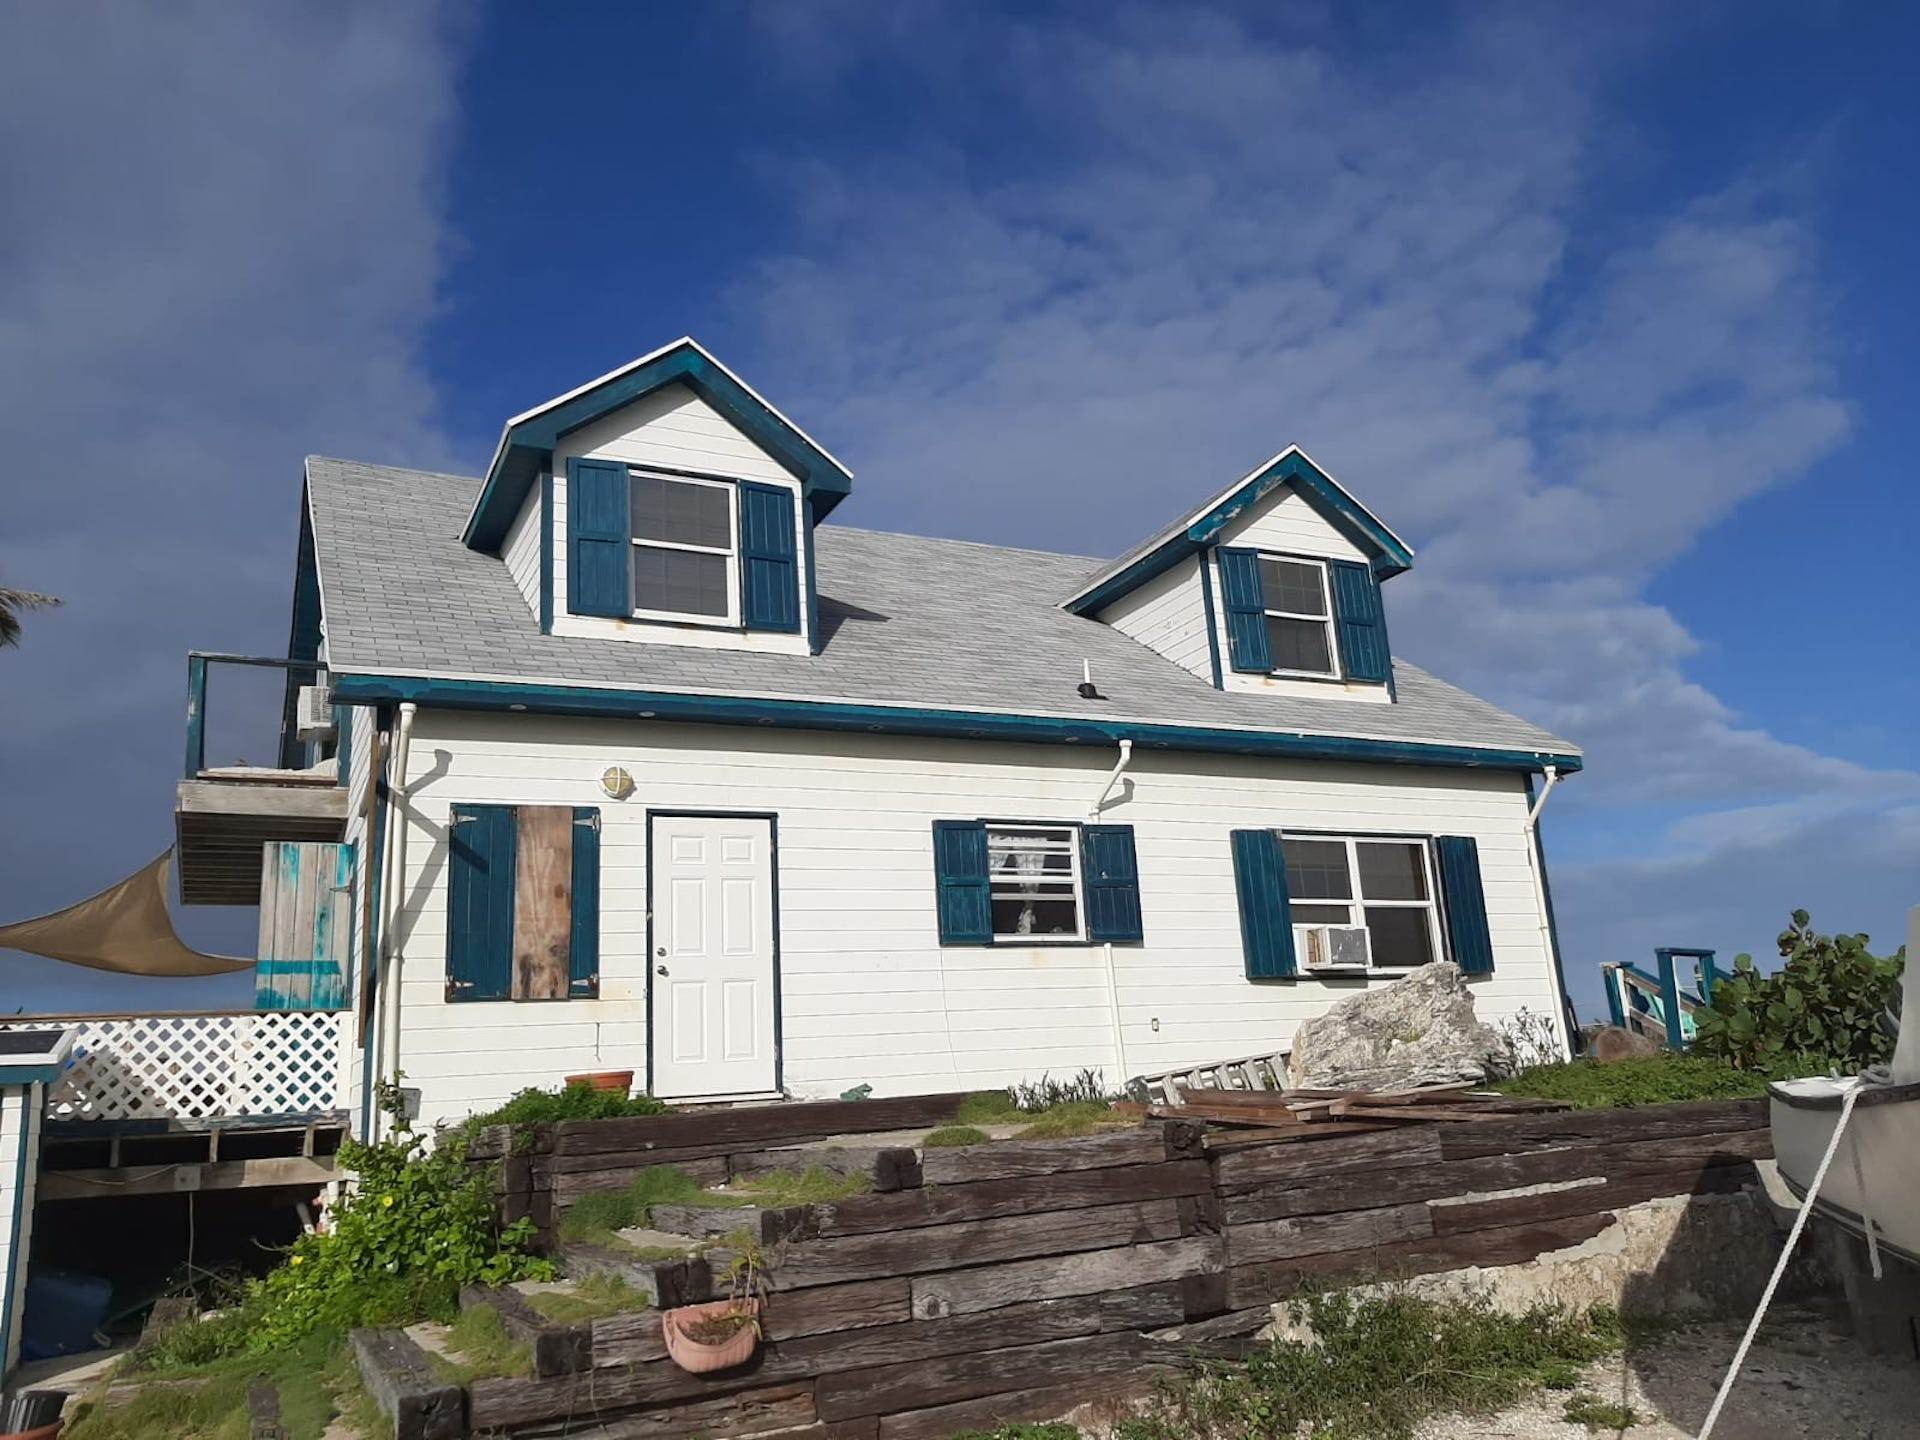 Single Family Homes for Sale at Lot 13A White sound, Elbow Cay, Abaco - MLS 43133 Elbow Cay Hope Town, Abaco, Bahamas